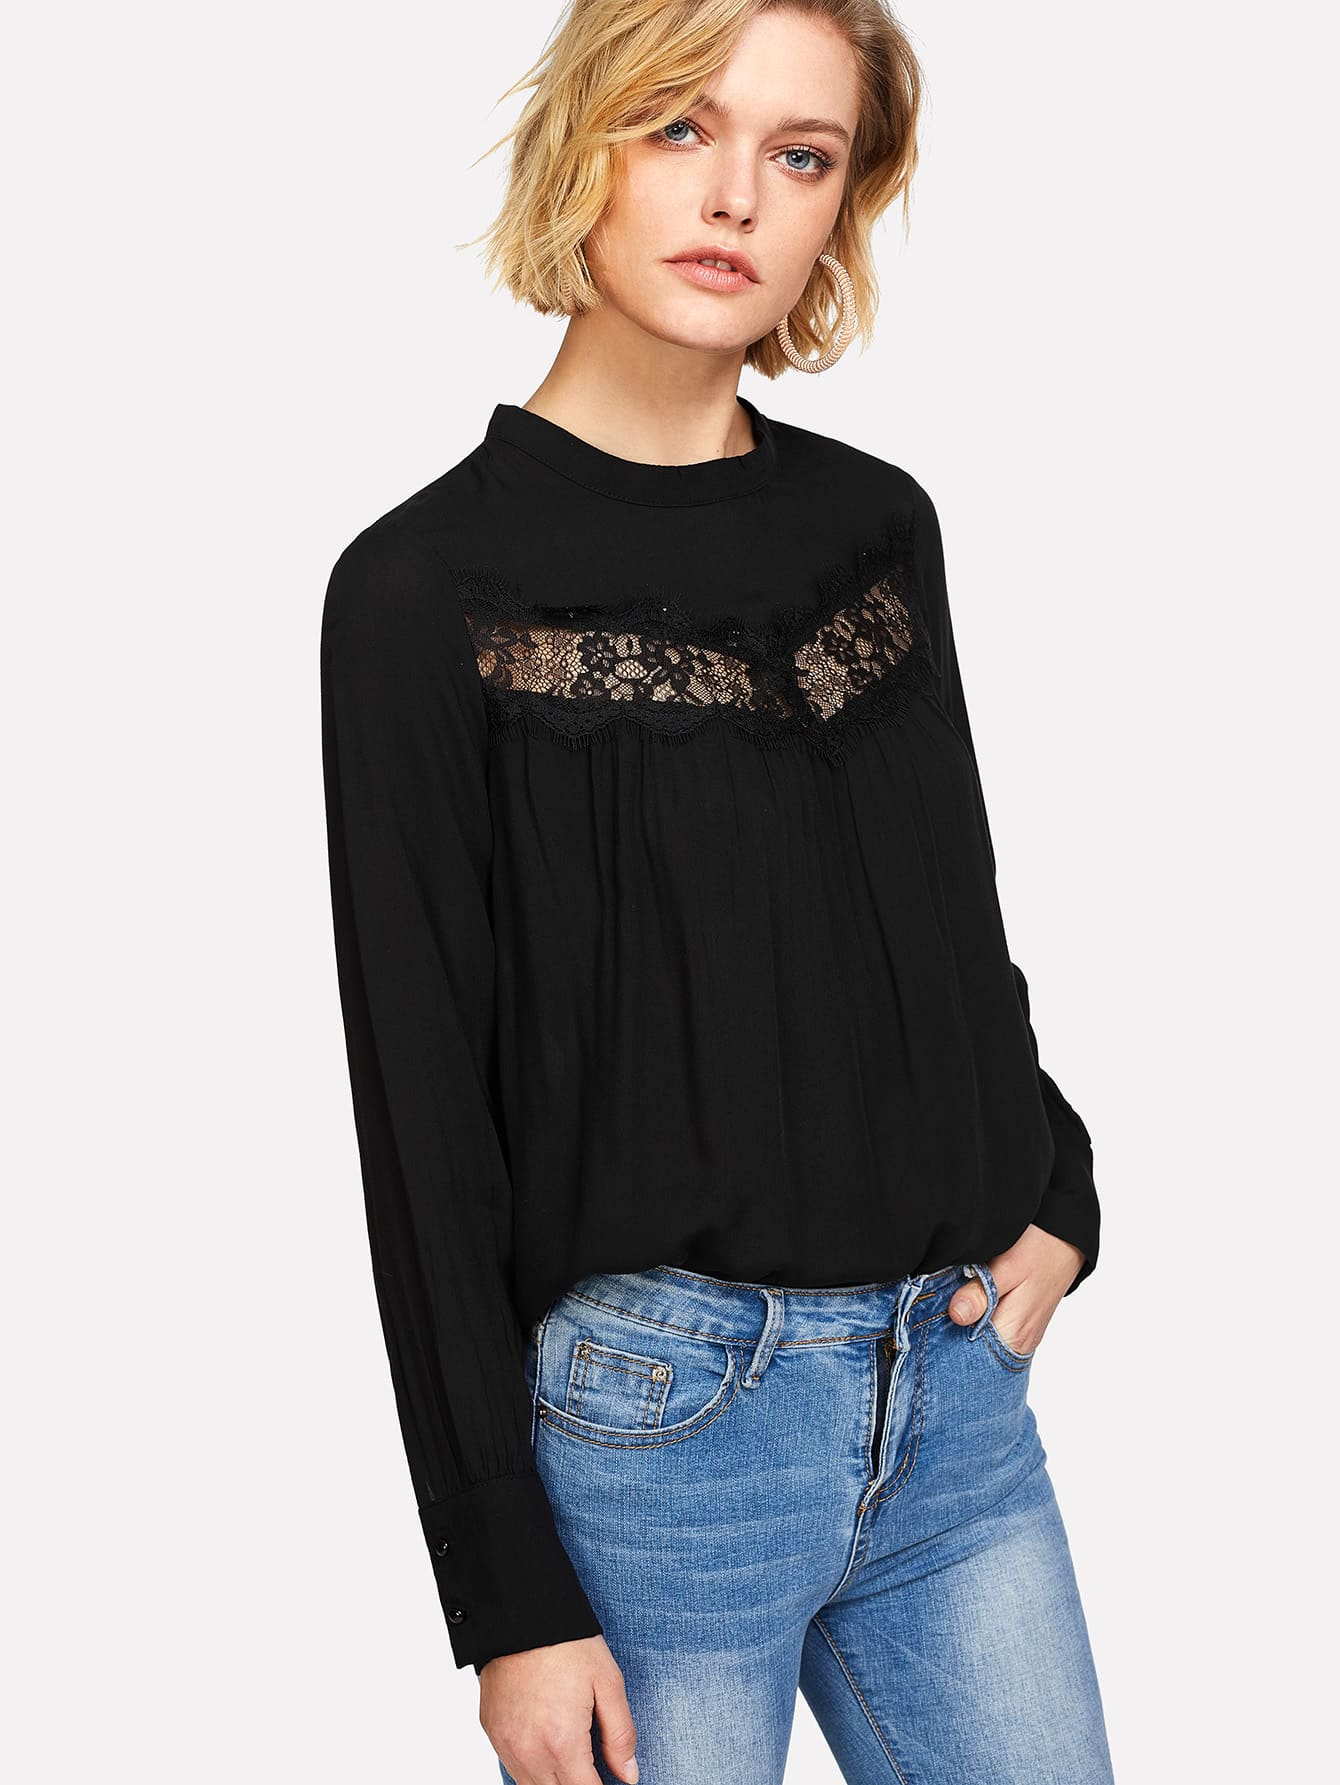 Lace Insert Solid Blouse